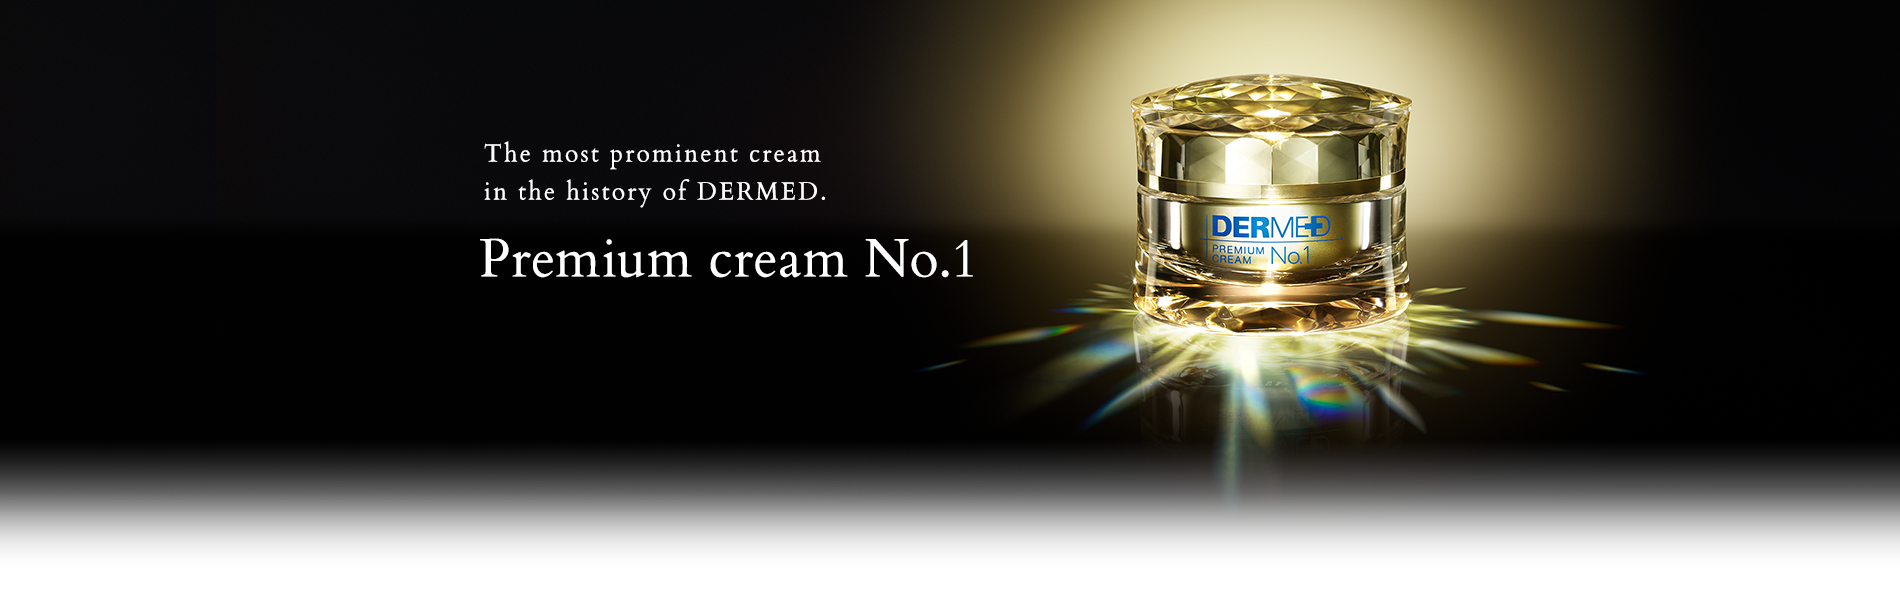 The most prominent cream in the history of DERMED. Premium cream No.1